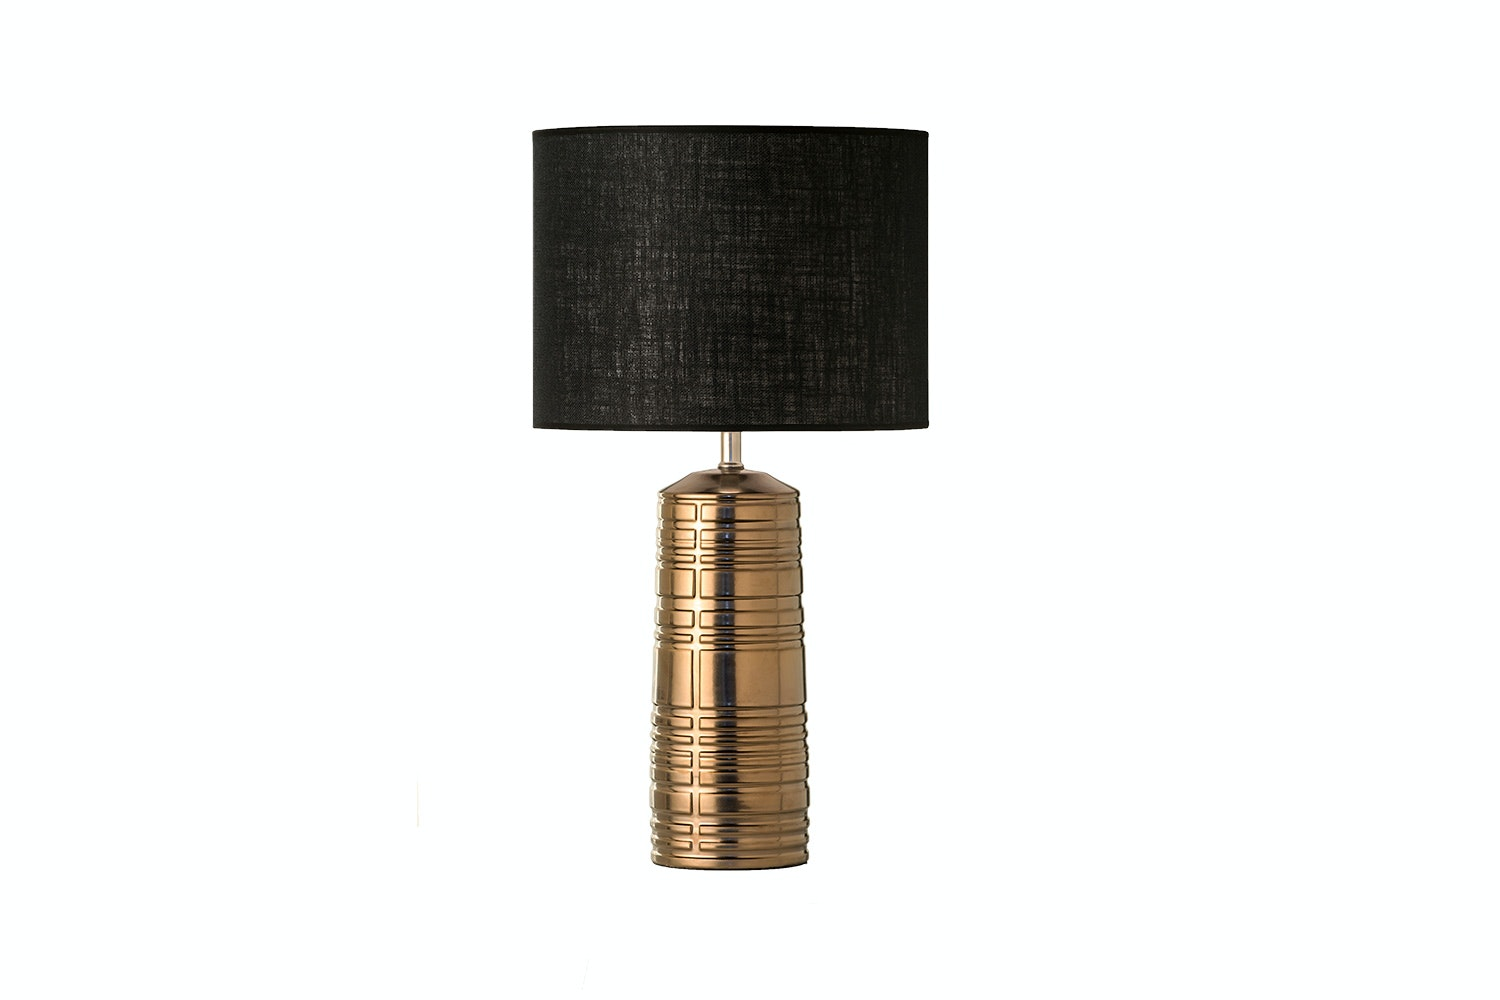 Gizmo Copper Table Lamp by Mayfield